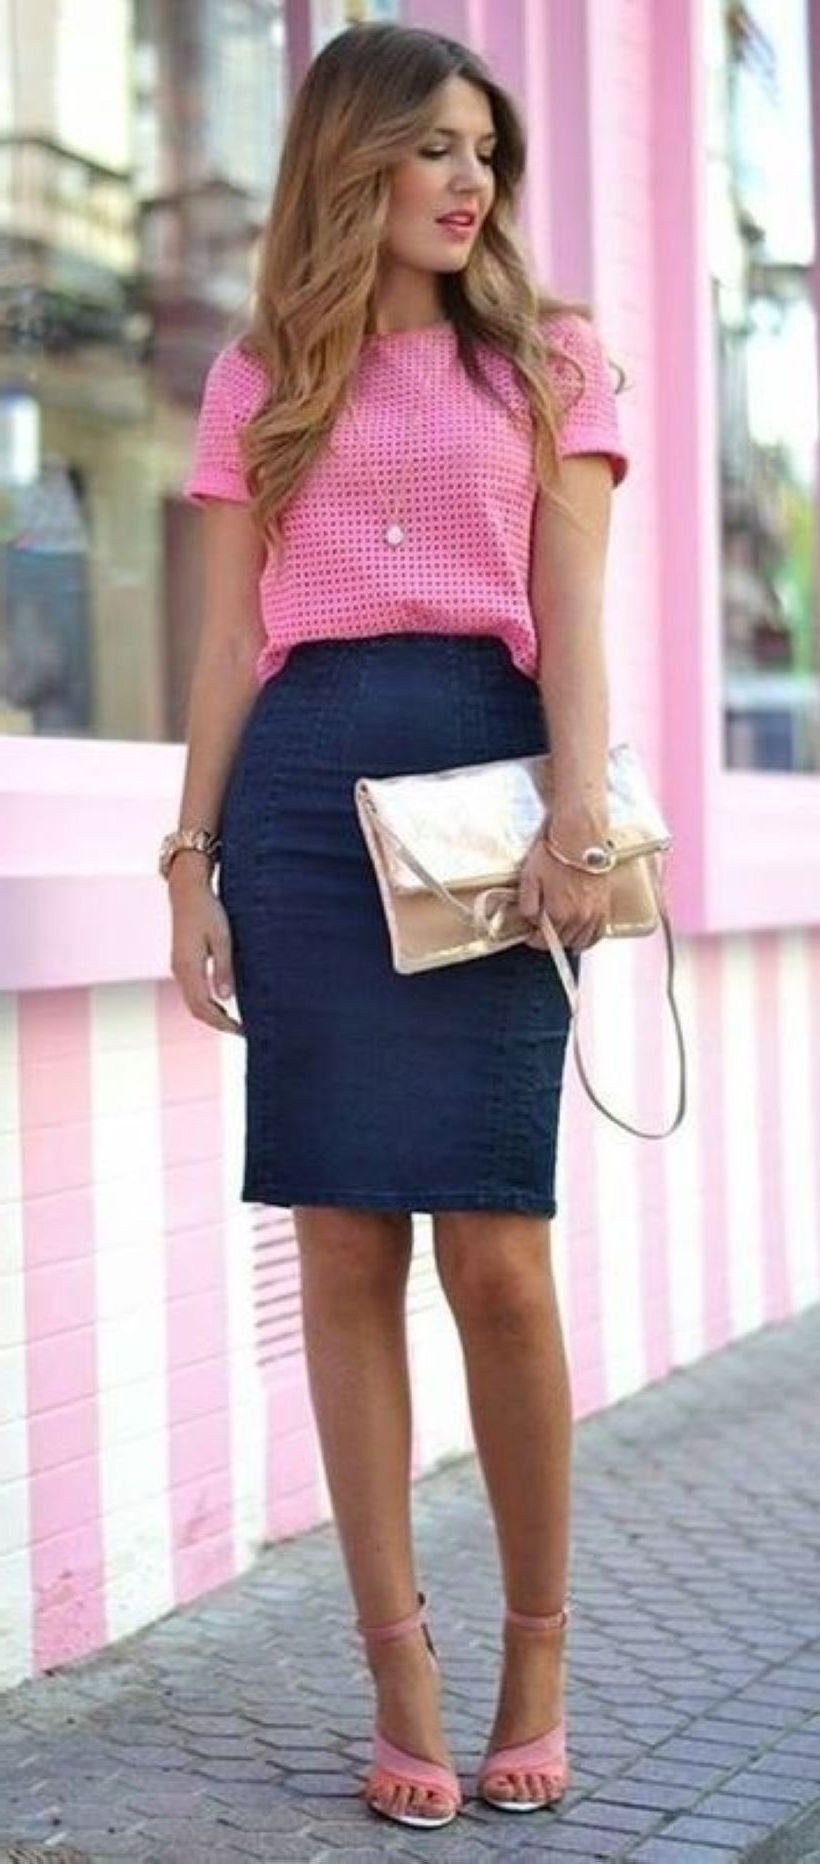 Street Style Guide to Summer Work Attire advise